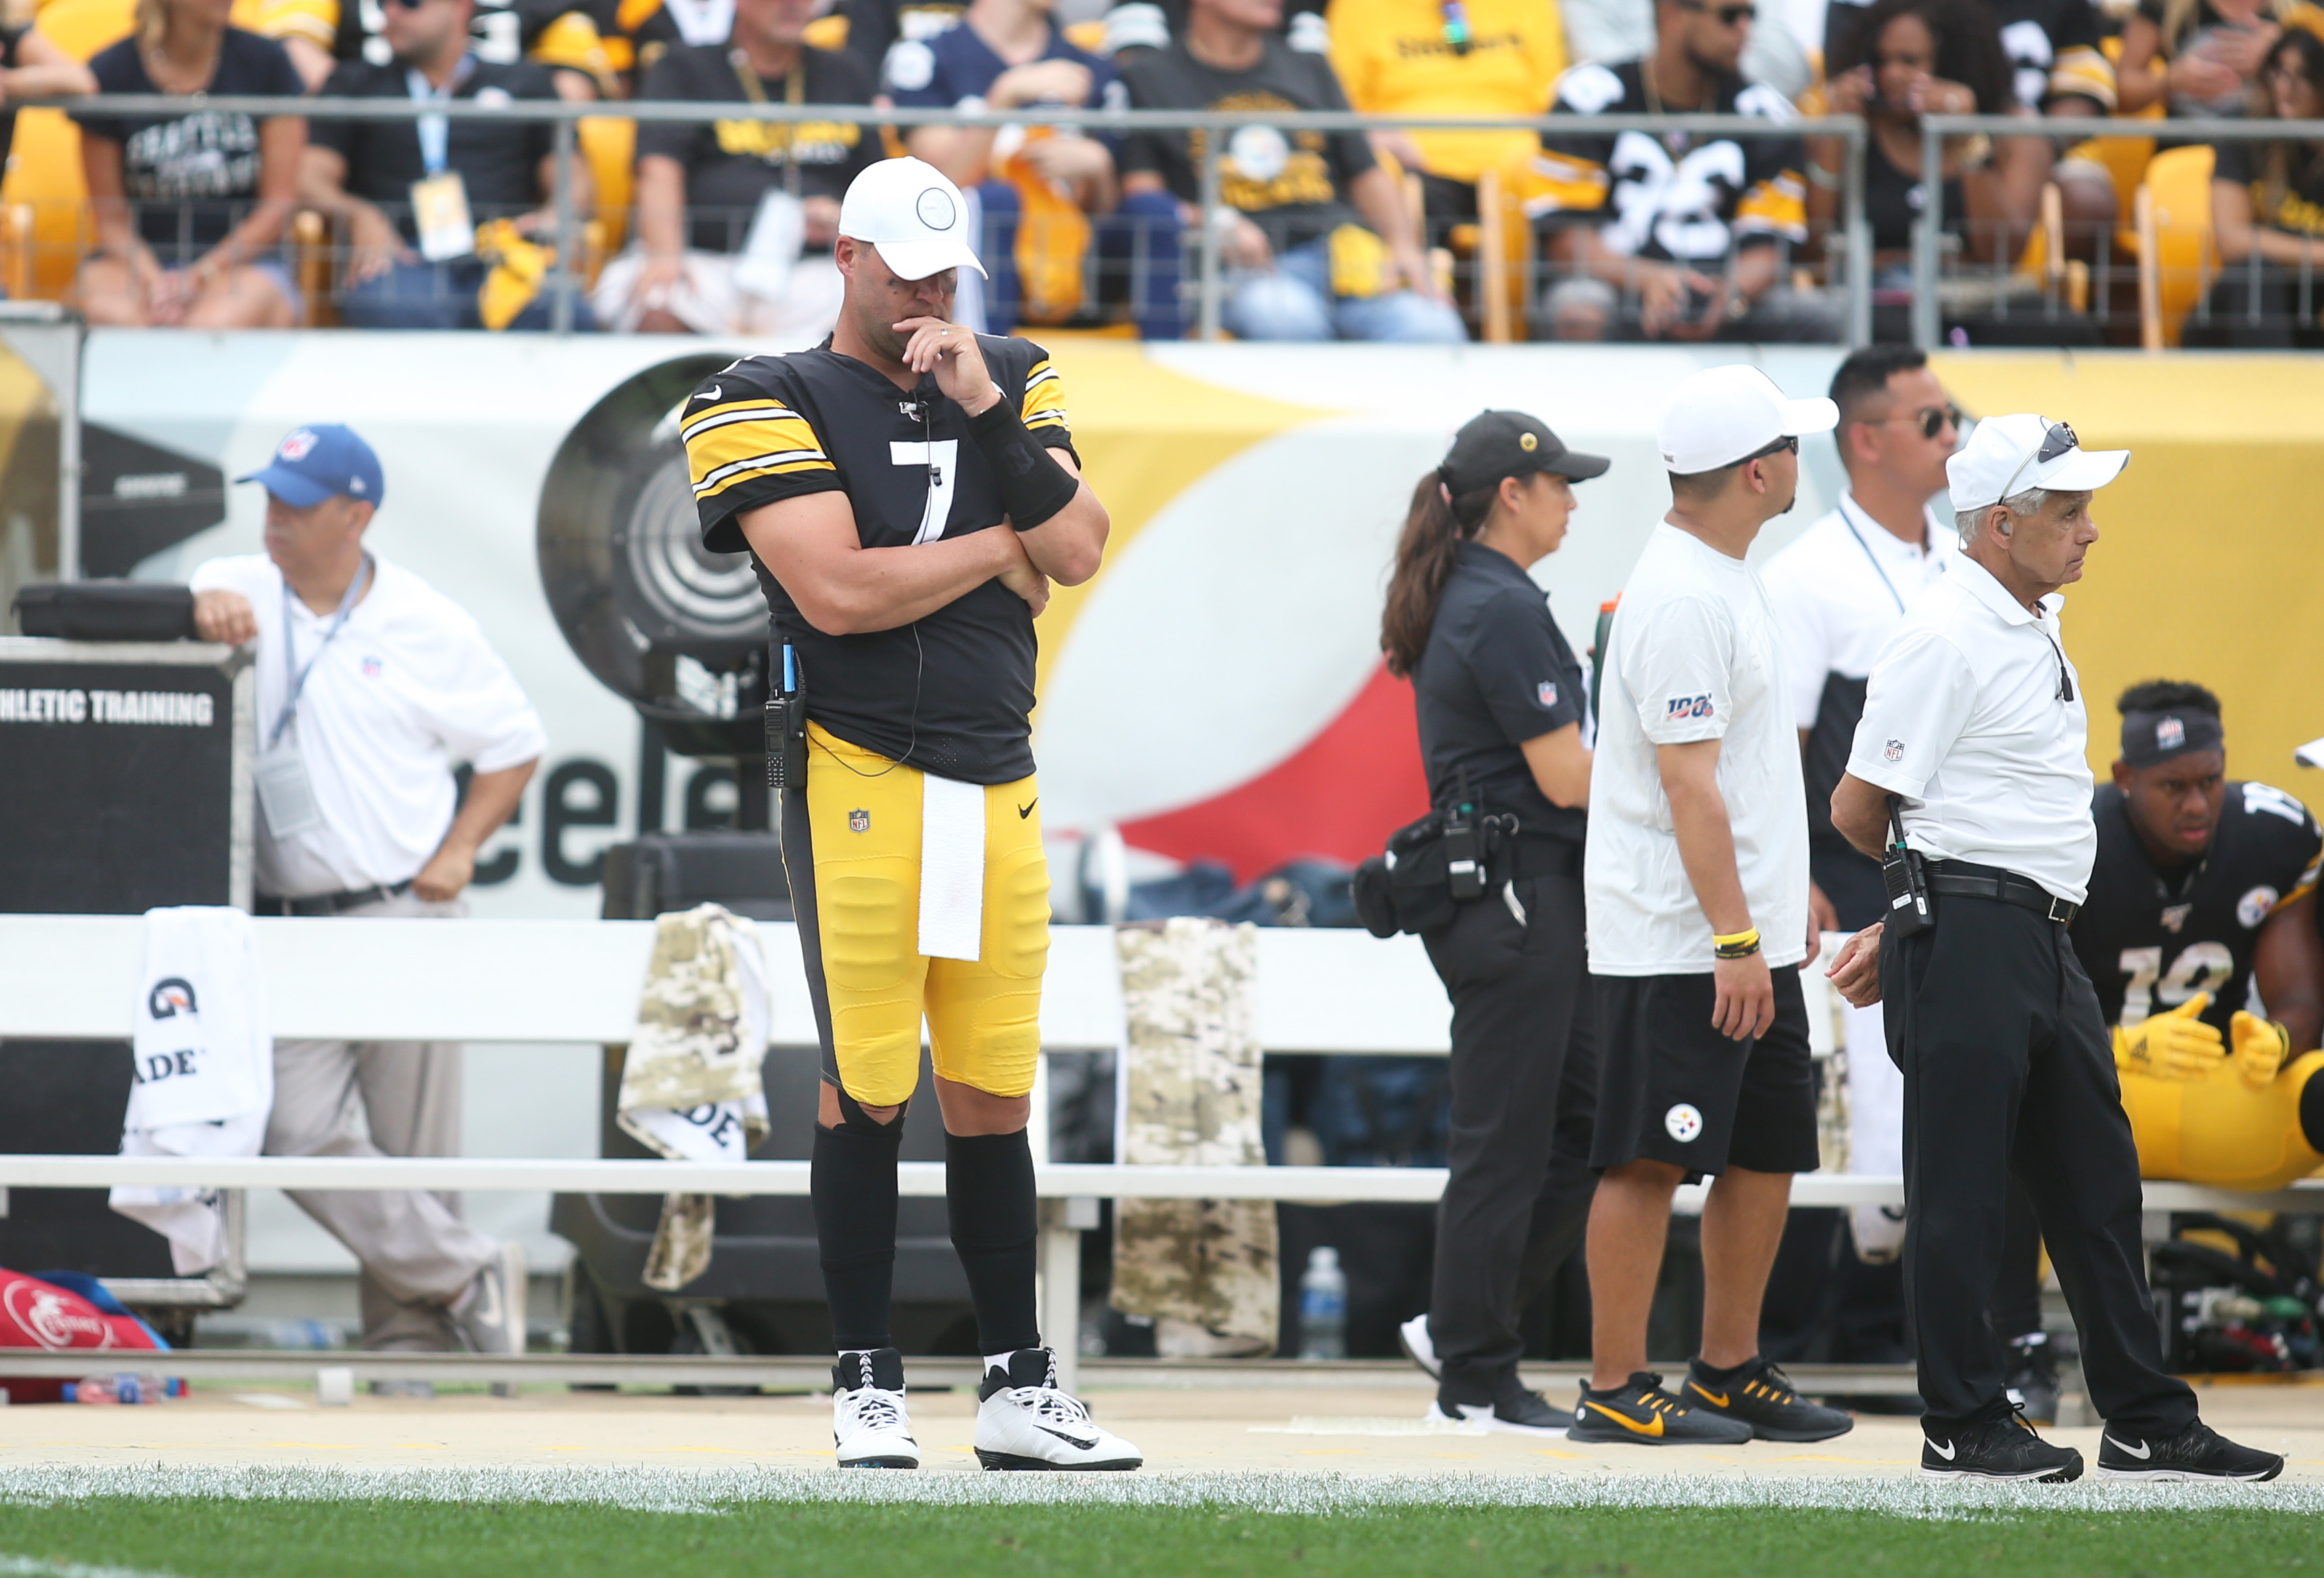 Ben Roethlisberger's injury is only one reason the Steelers are a lost cause this season